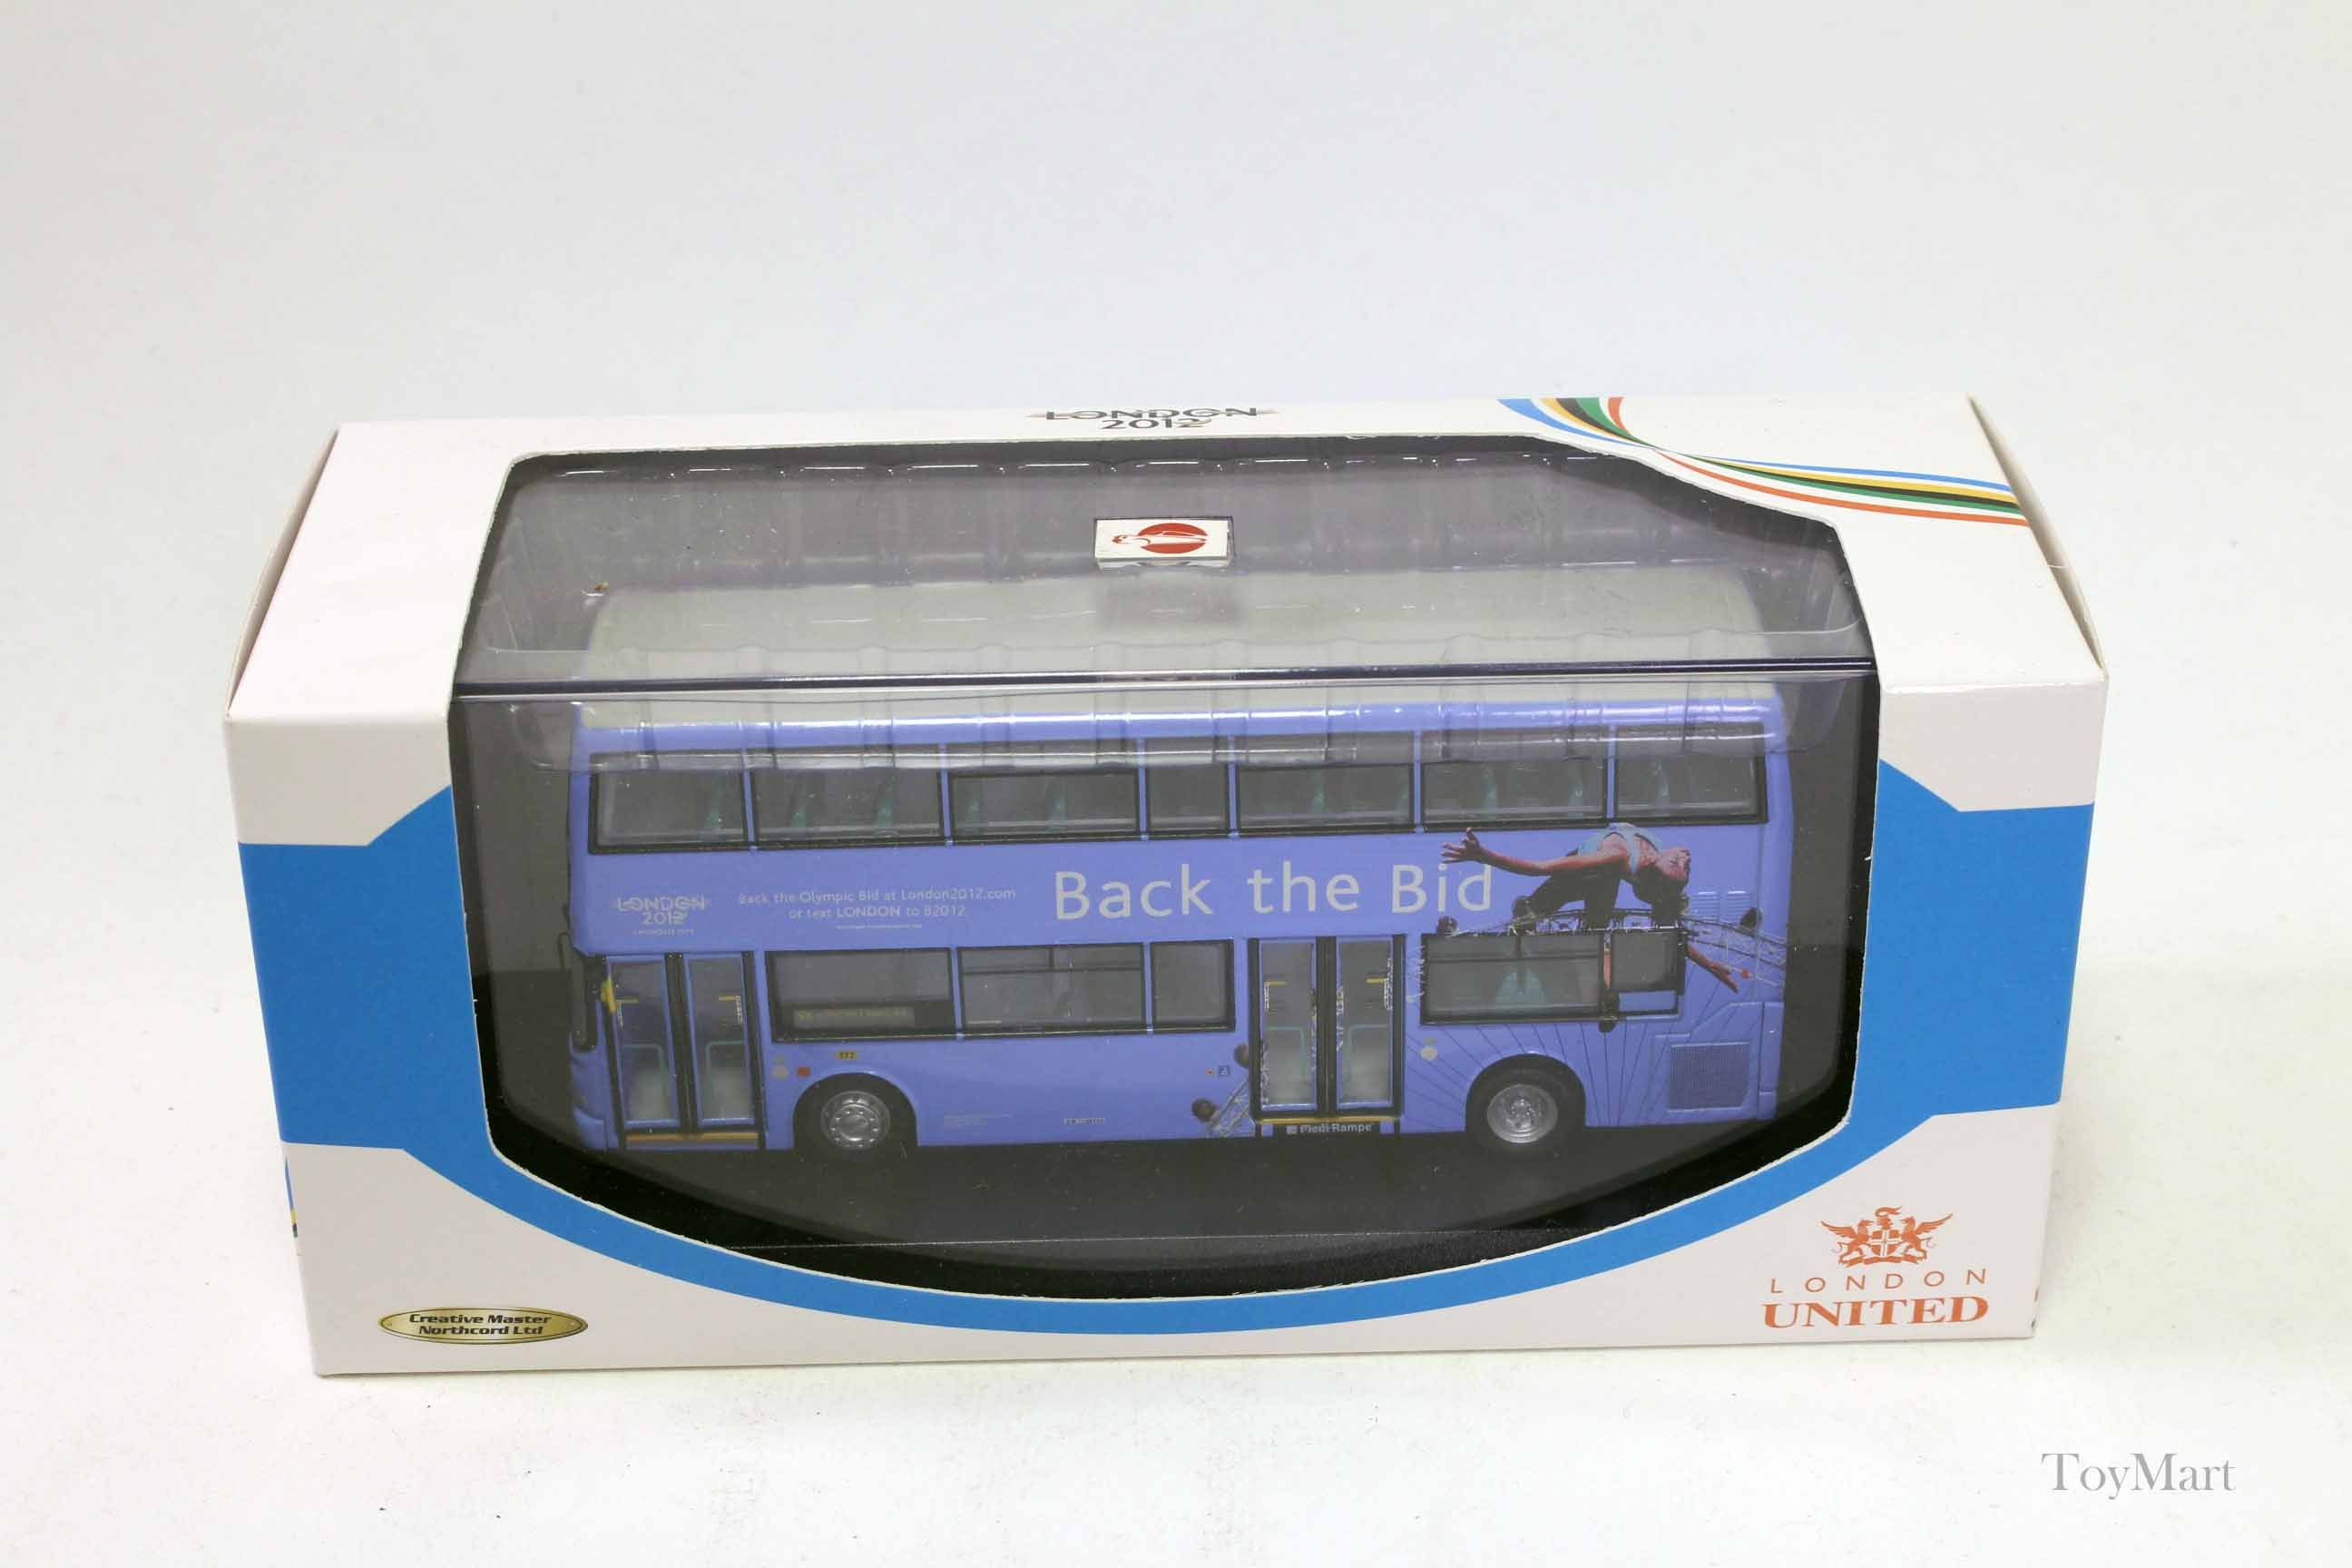 Picture Gallery for Creative Master UKBUS1020 Dennis Transbus Trident